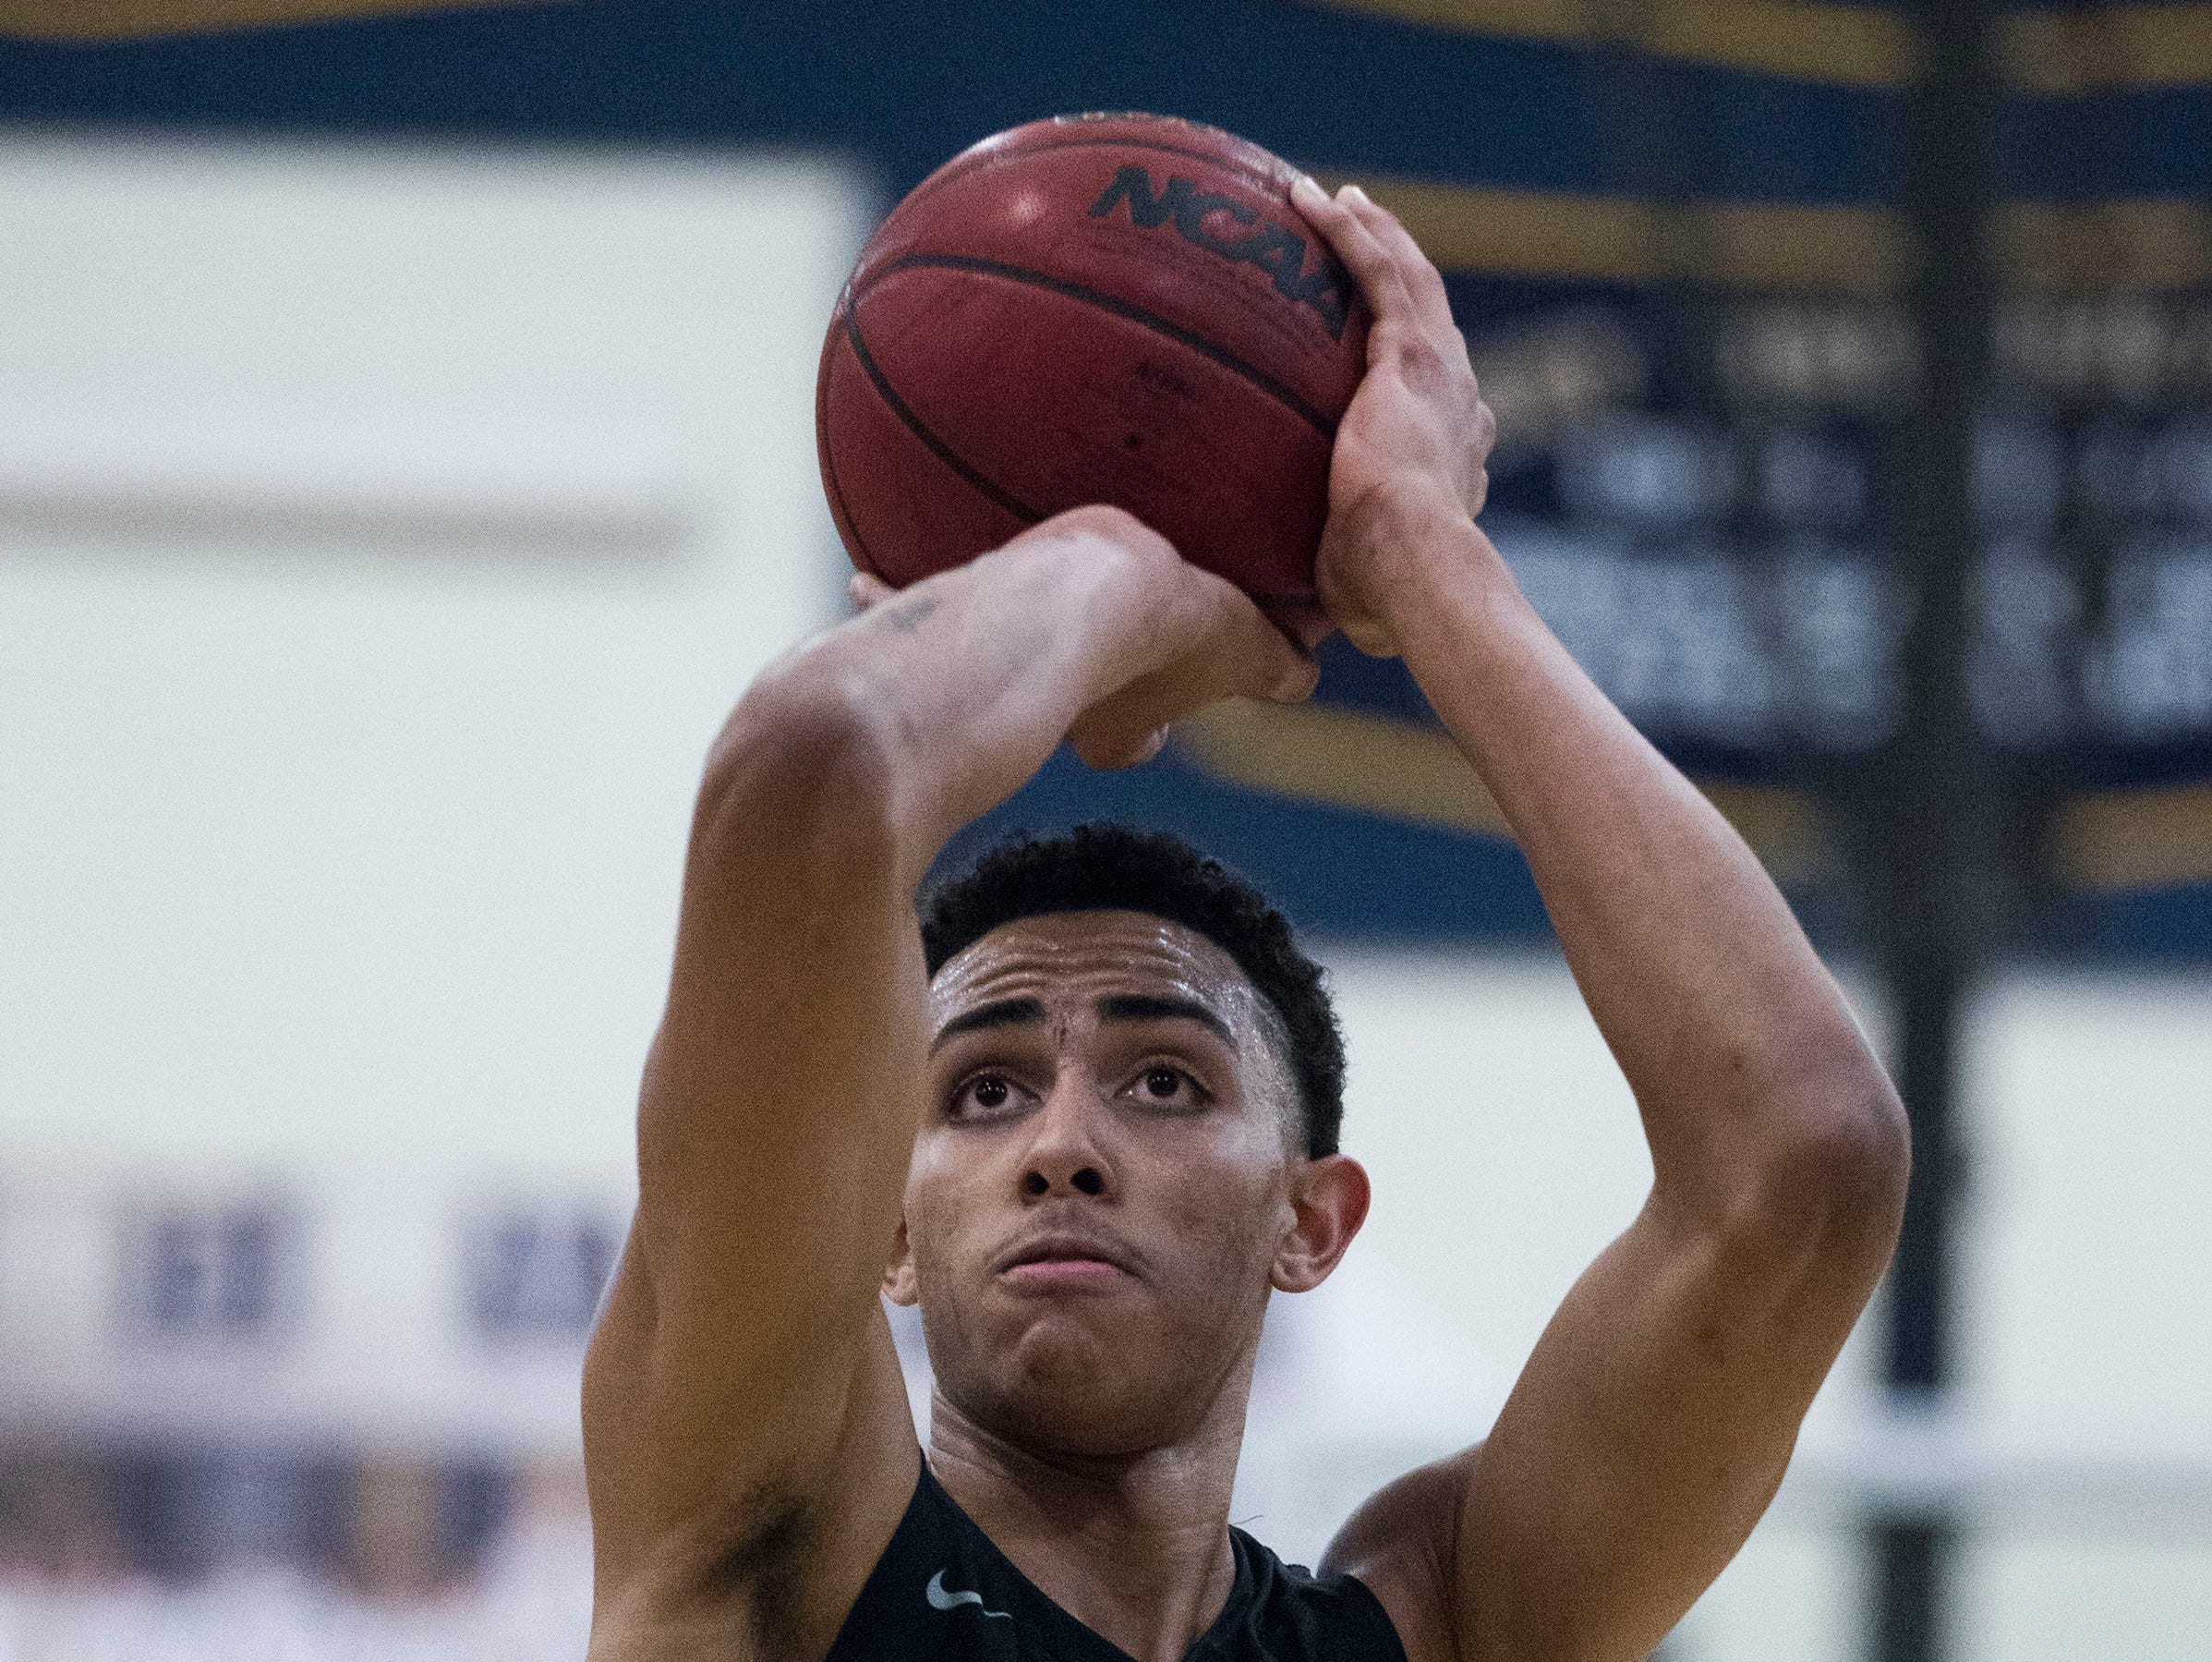 Mountain Pointe's Jalen Graham (24) shoots a free-throw against Desert Vista during in the second half of their game at Desert Vista High School in Phoenix, Friday, Jan.11, 2019.